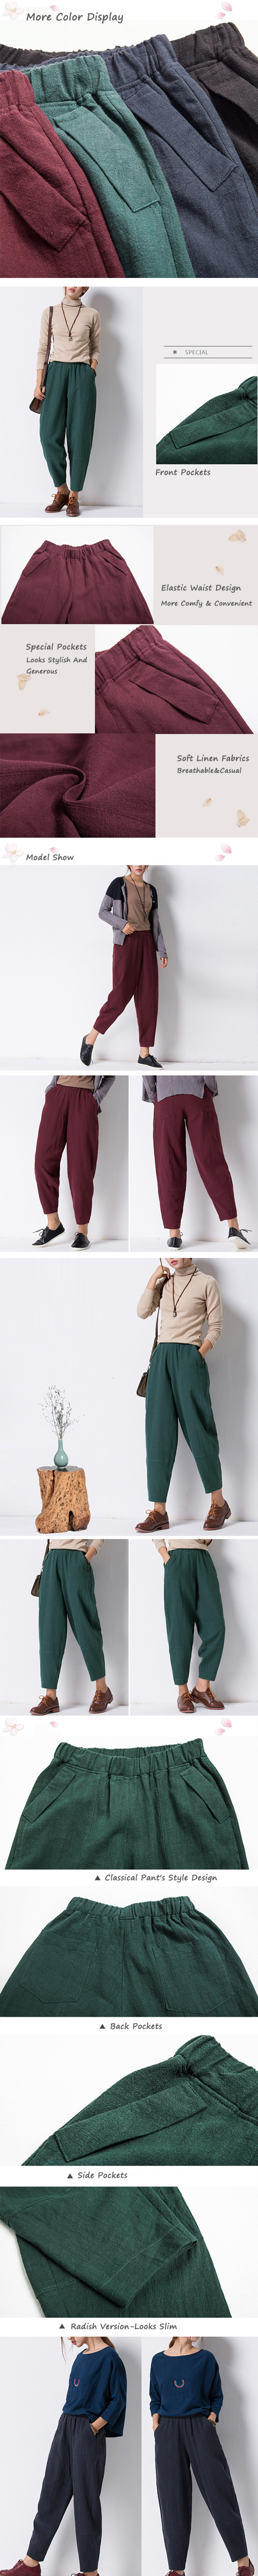 Solid Color Elastic Waist Long Pants